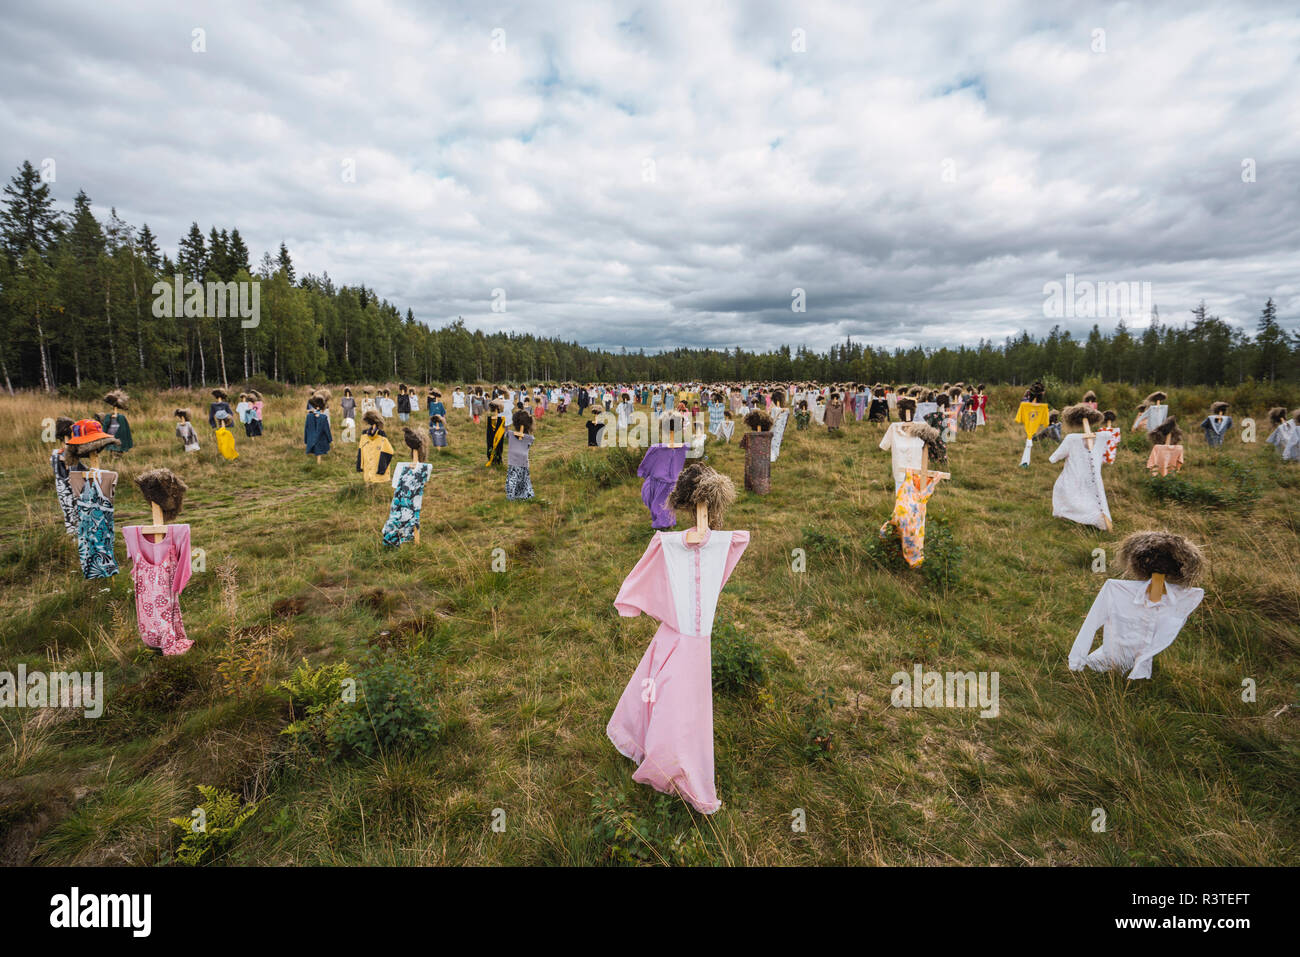 Finland,  Suomussalmi, The Silent People, art project with crowd of scare crows - Stock Image